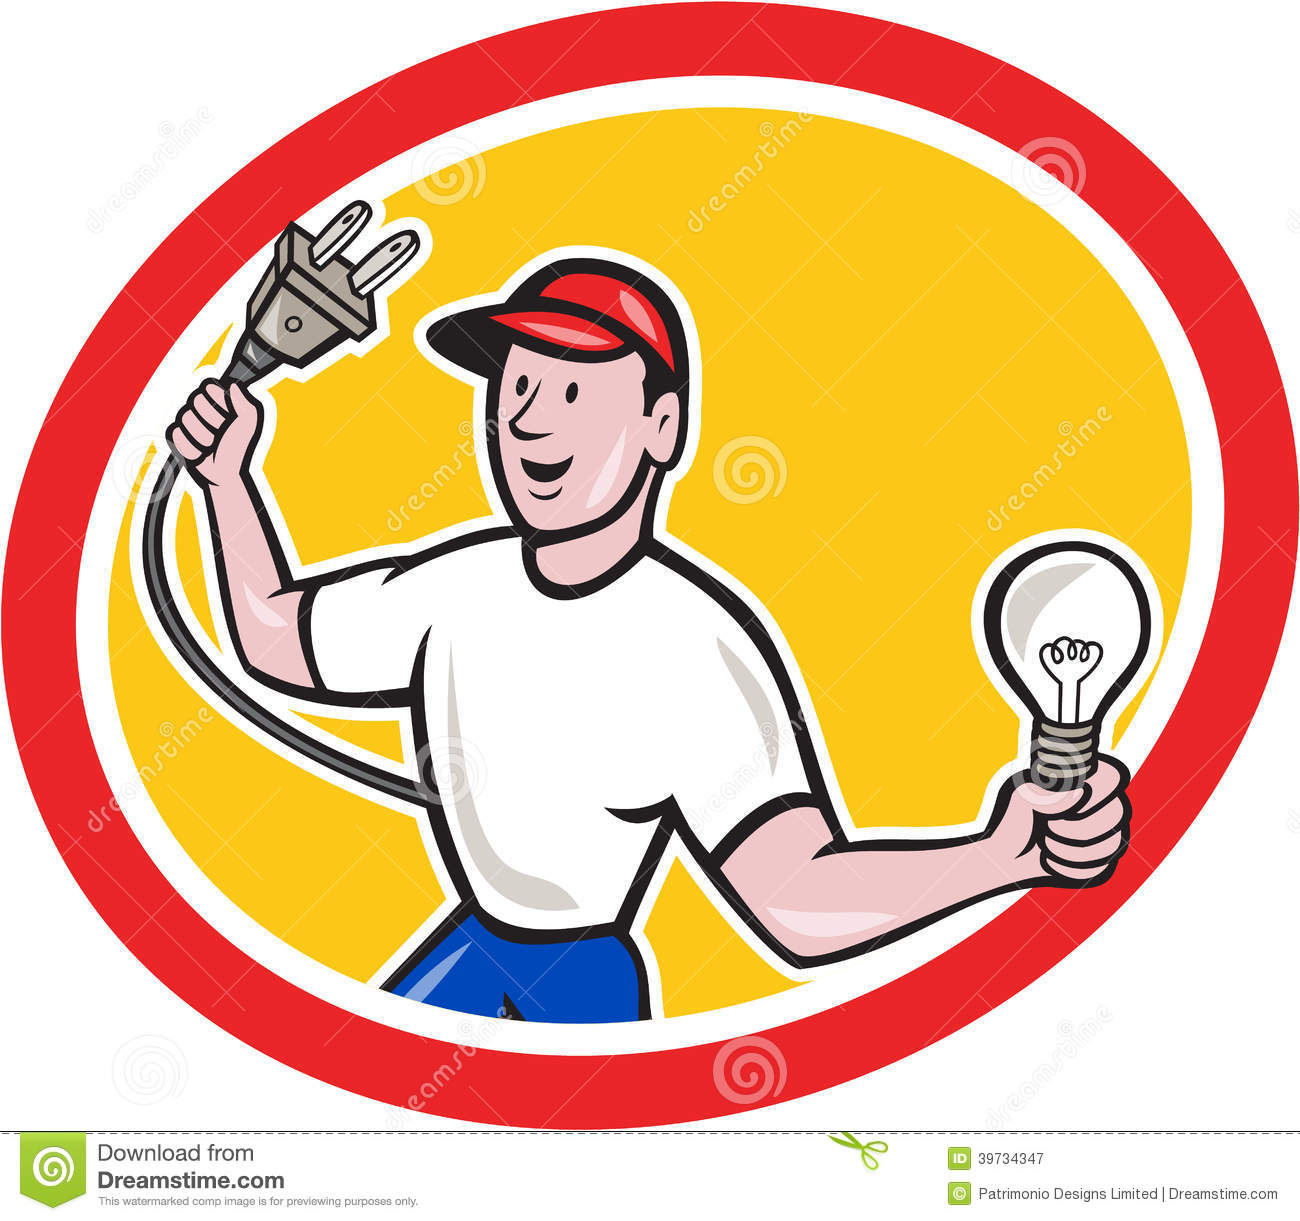 Royalty Free Stock Photography Electrician Holding Electric Plug Bulb Cartoon Illustration Worker One Hand Light Other Facing Front Set Image39734347 on electrical outlet clip art